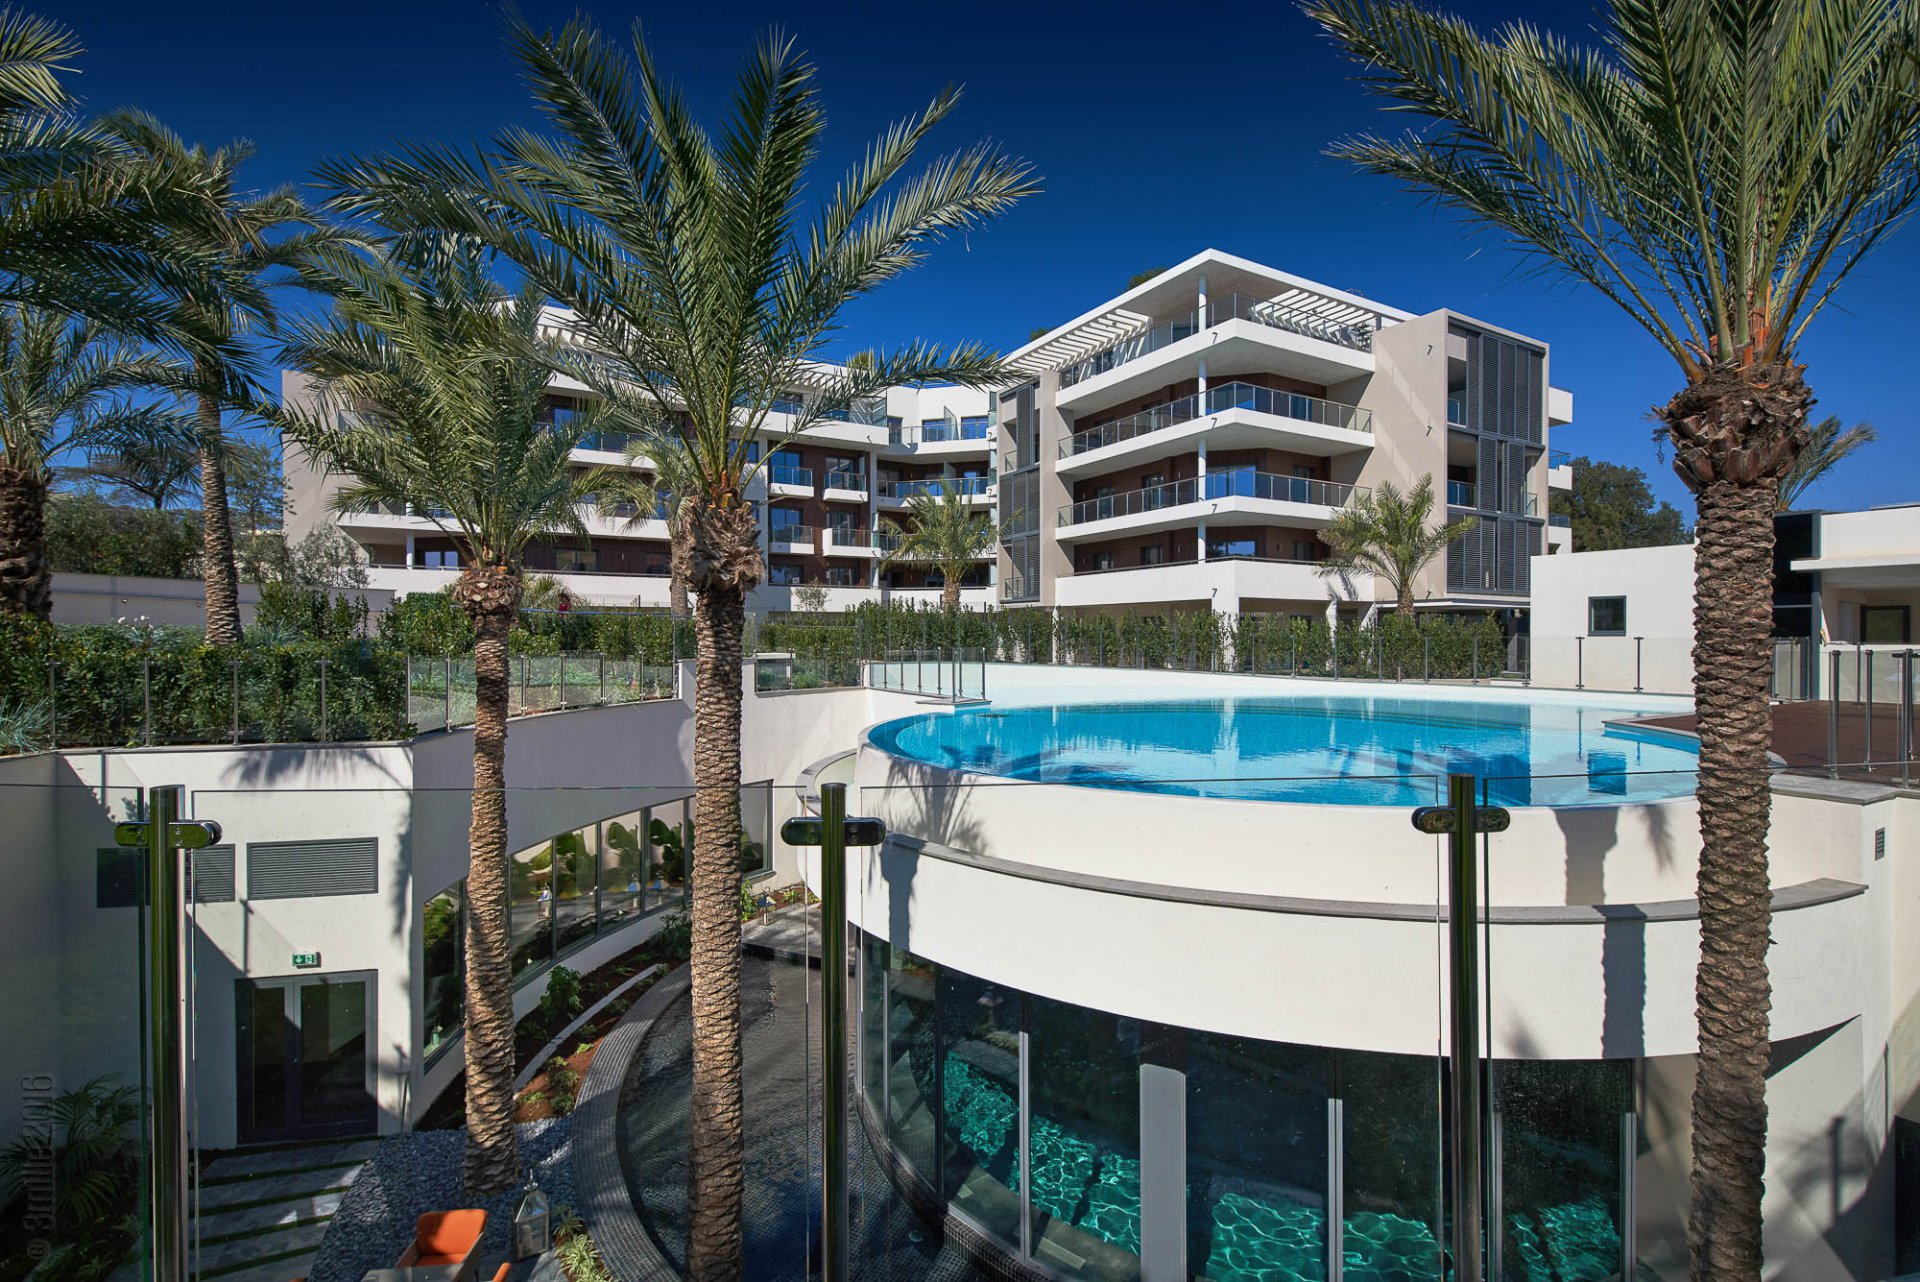 NEW DEVELOPMENT - LE PARC DU CAP